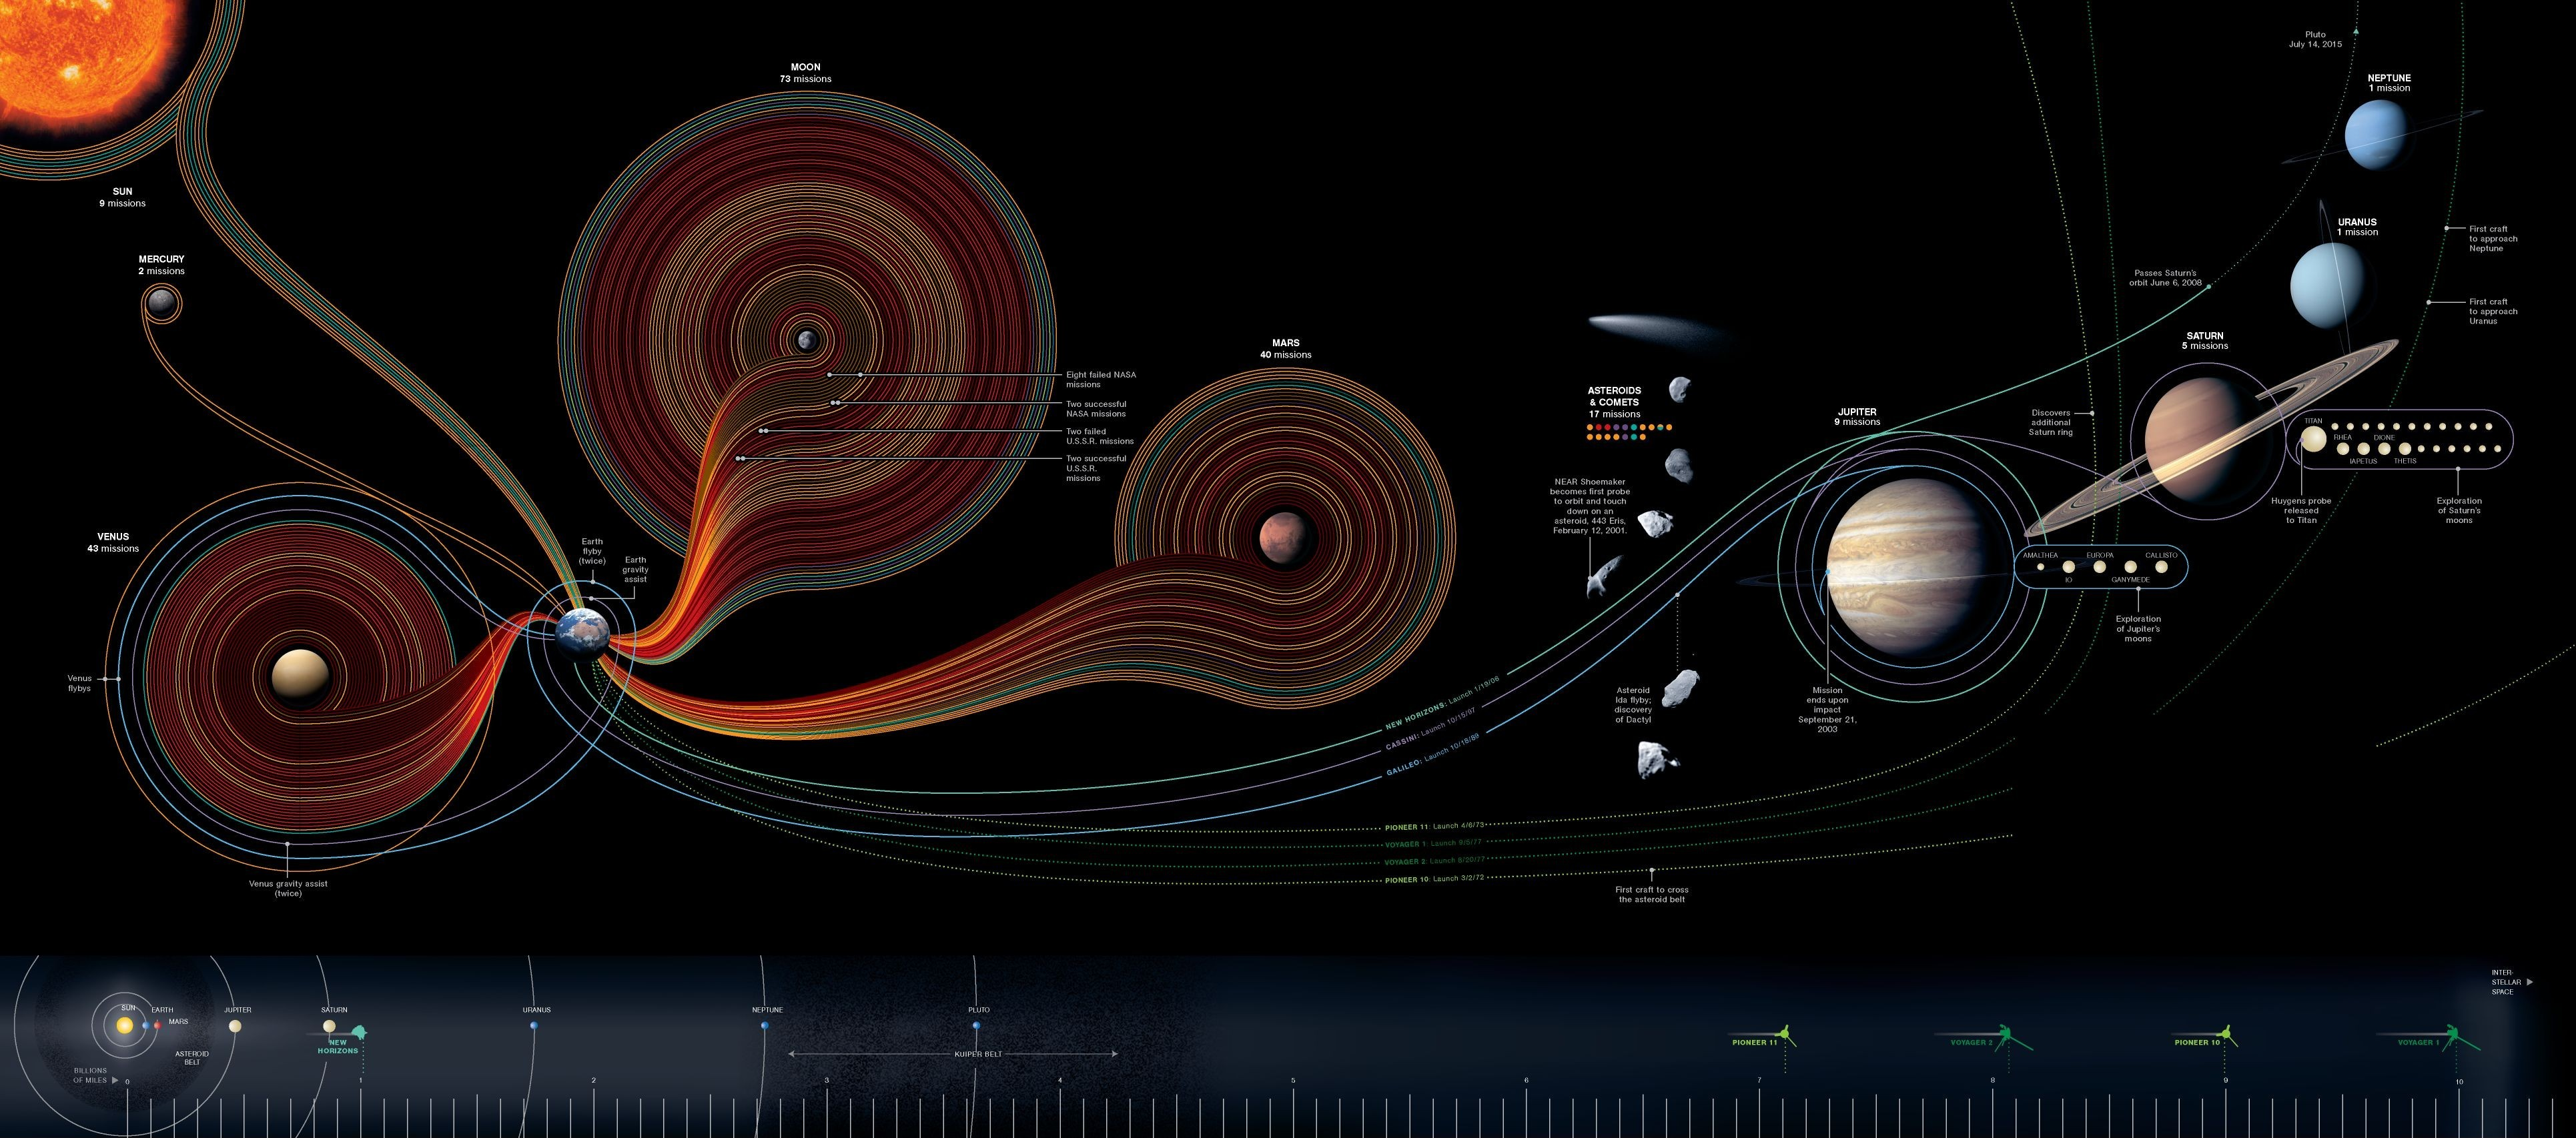 National Geographic has long been a master at infographics.